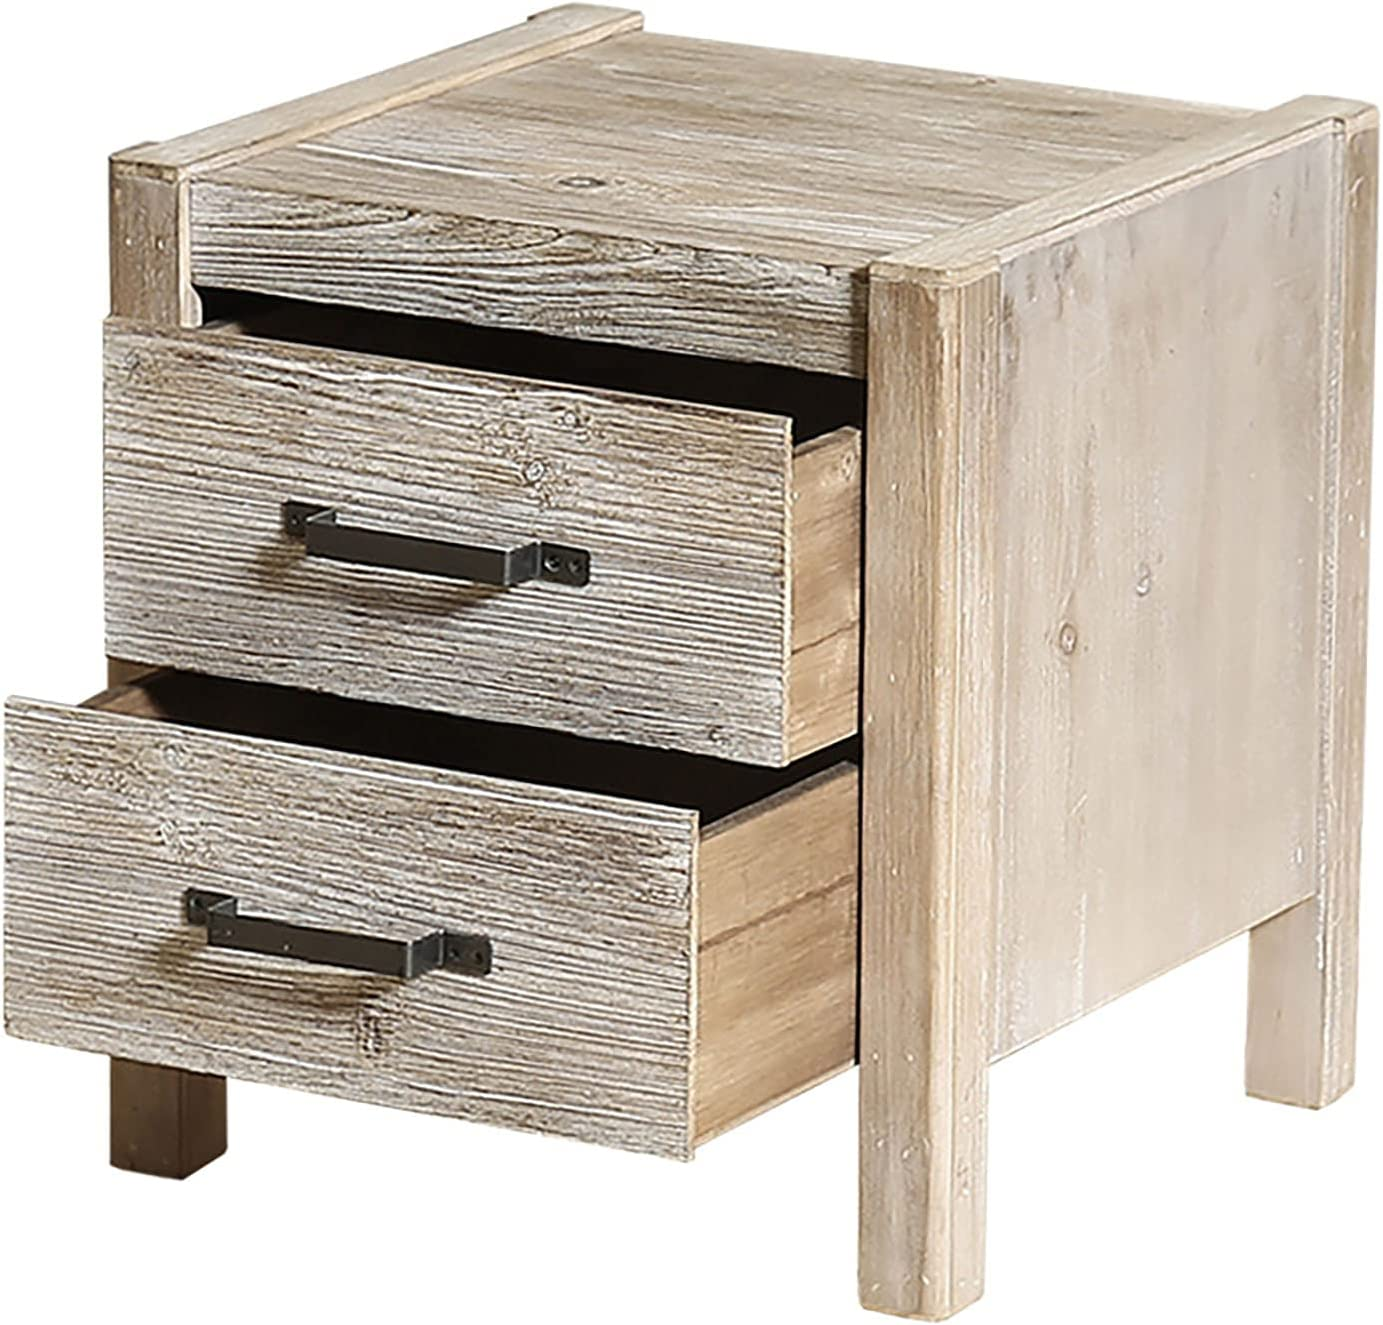 topbuyer Solid Wood Nightstand with Rustic Traditional Drawer 1 Ranking TOP19 San Diego Mall